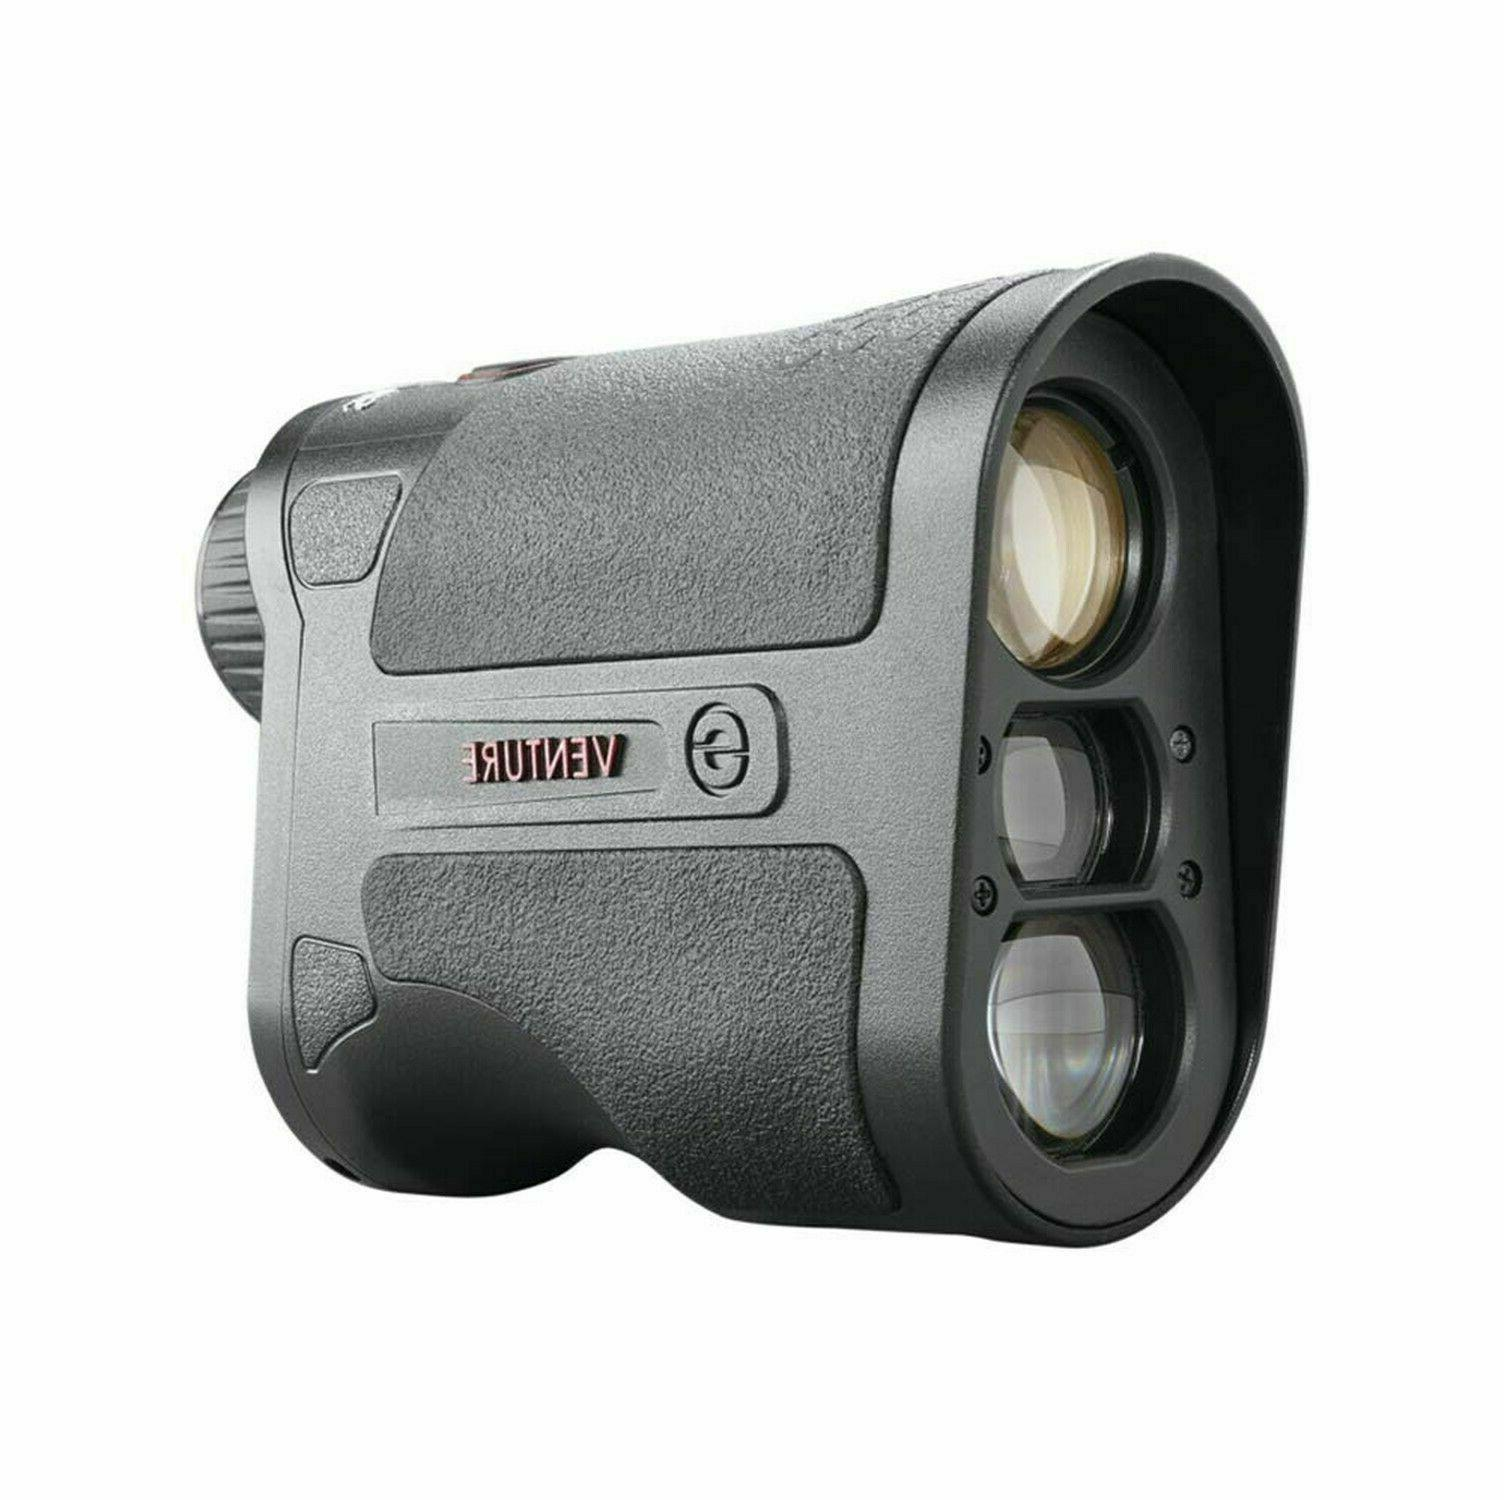 simmons venture tilt 6x20mm rangefinder svl620bt new